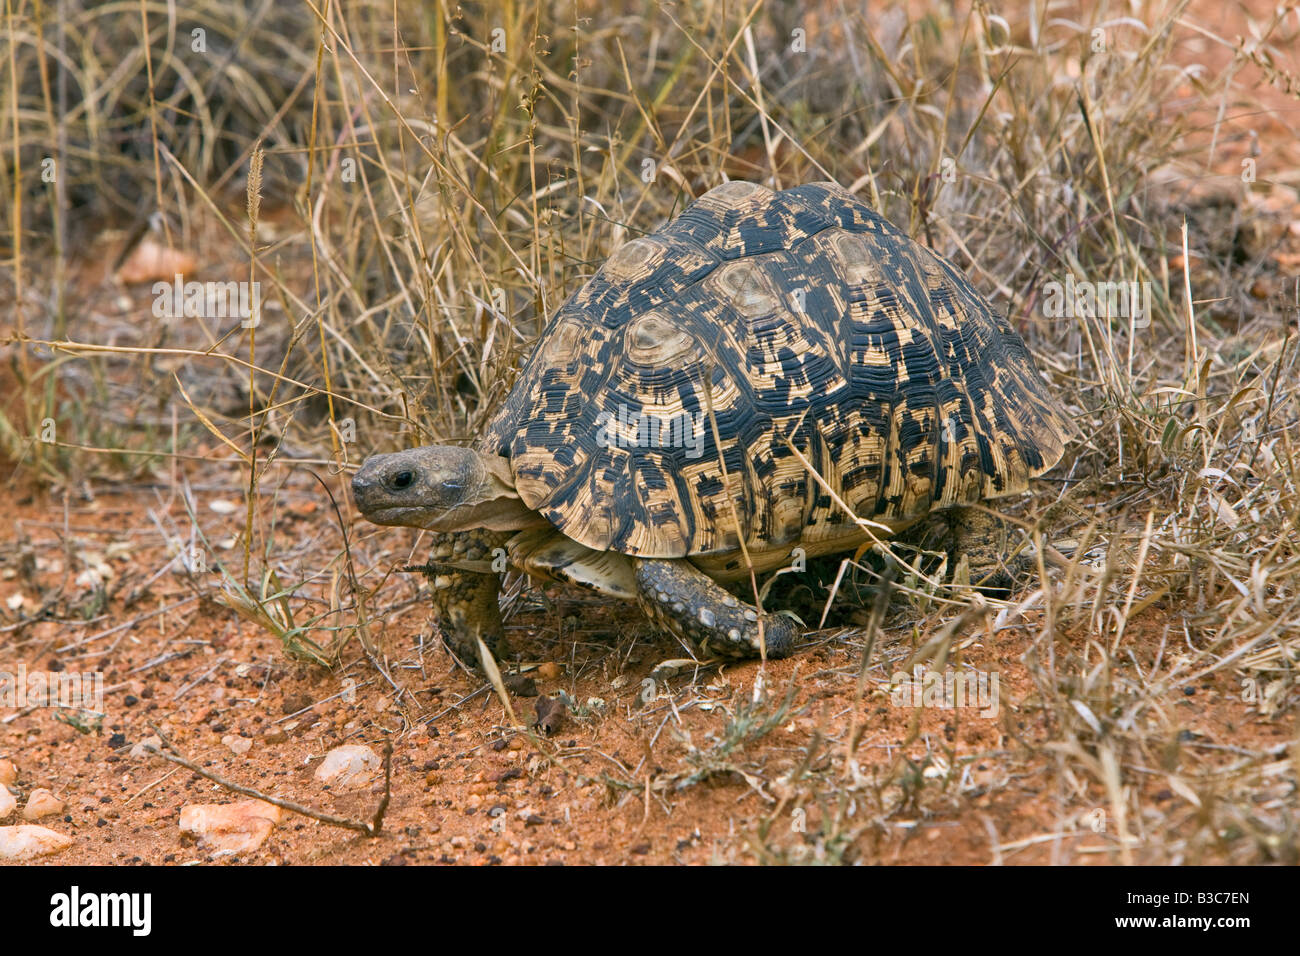 Kenya, Tsavo West National Park. A leopard tortoise (Geochelone pardalis) in Tsavo West National Park. - Stock Image